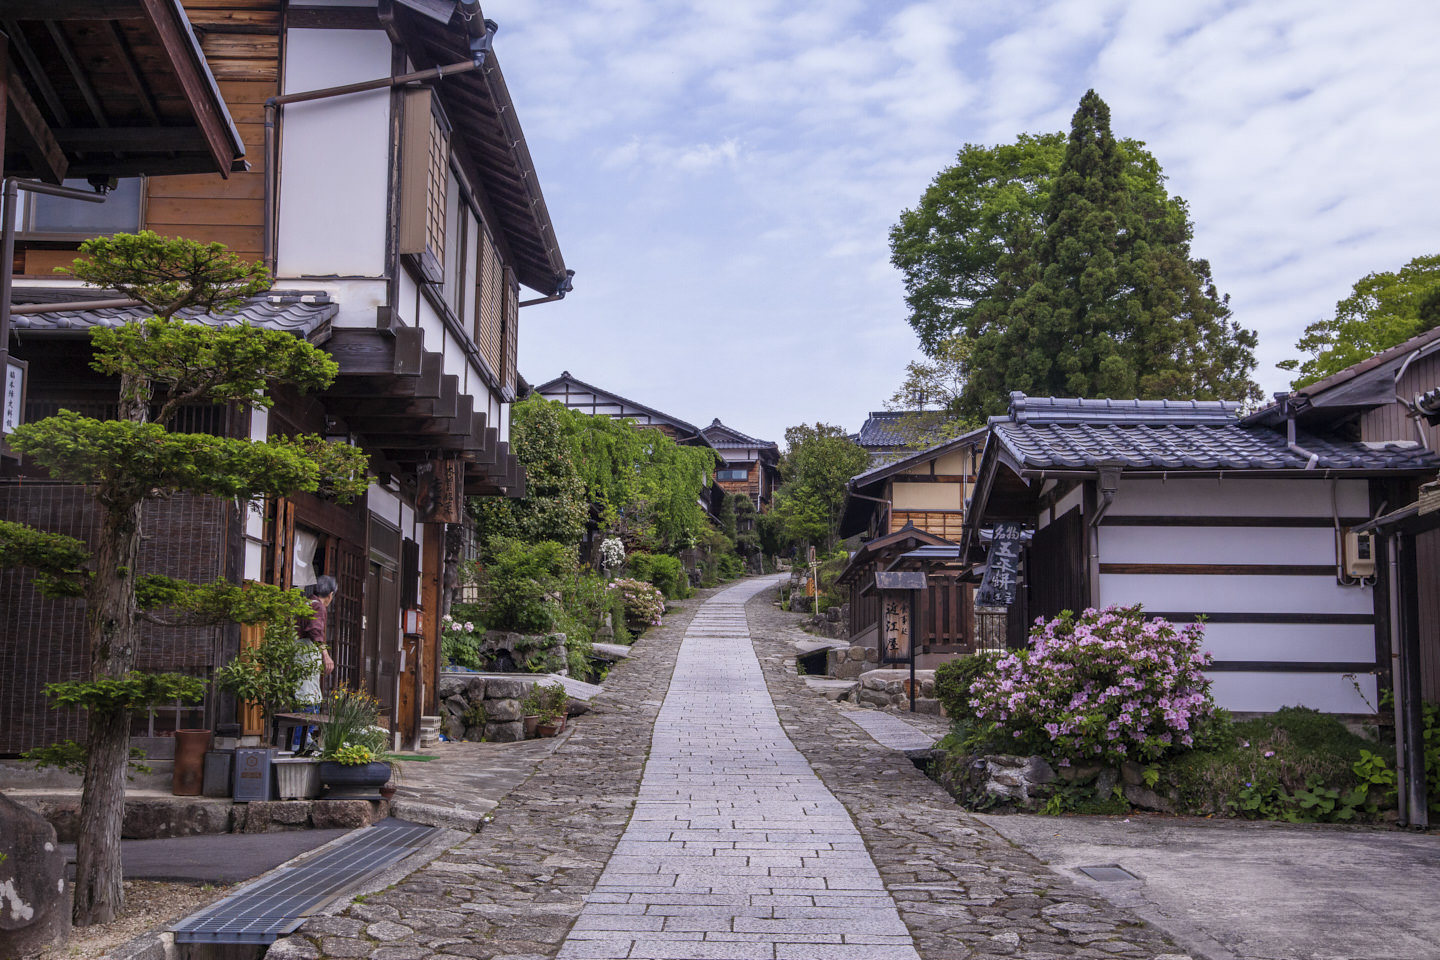 Pink bushes, slanted roofs and japanese trees line the streets of Magome